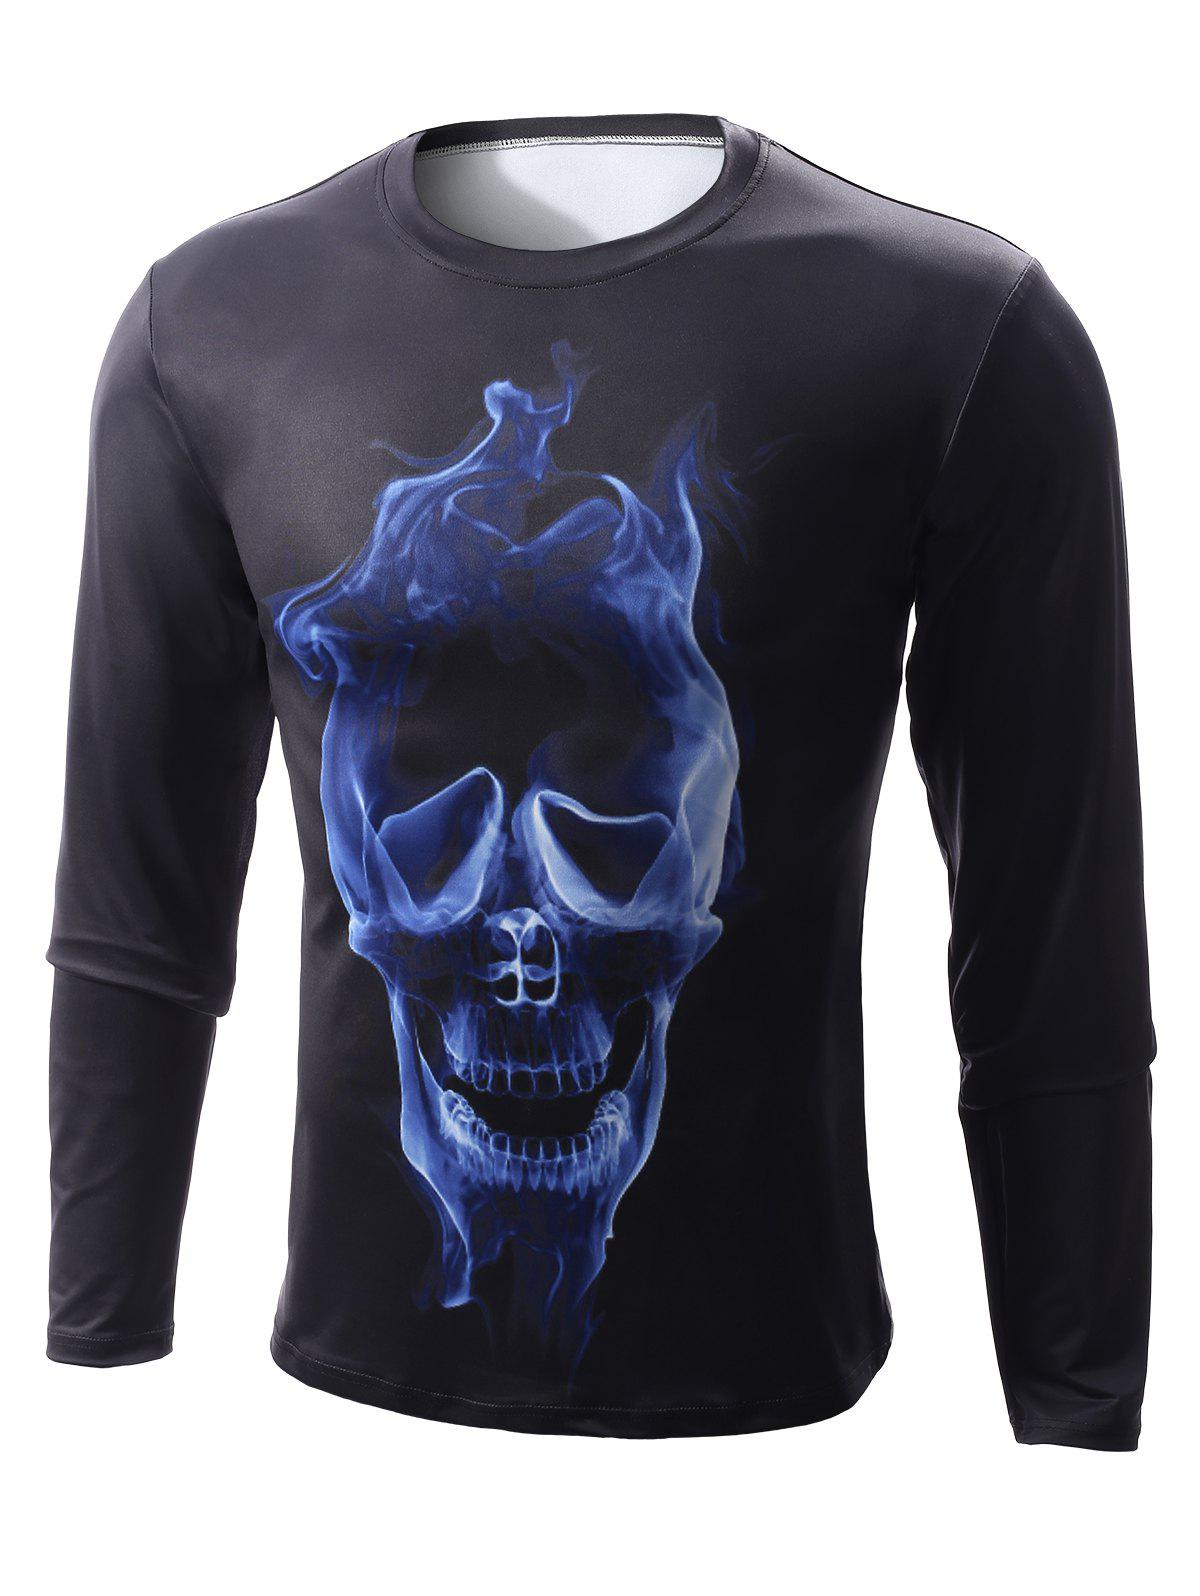 Round Neck Long Sleeve 3D Skull Flame Print T-Shirt - BLACK S